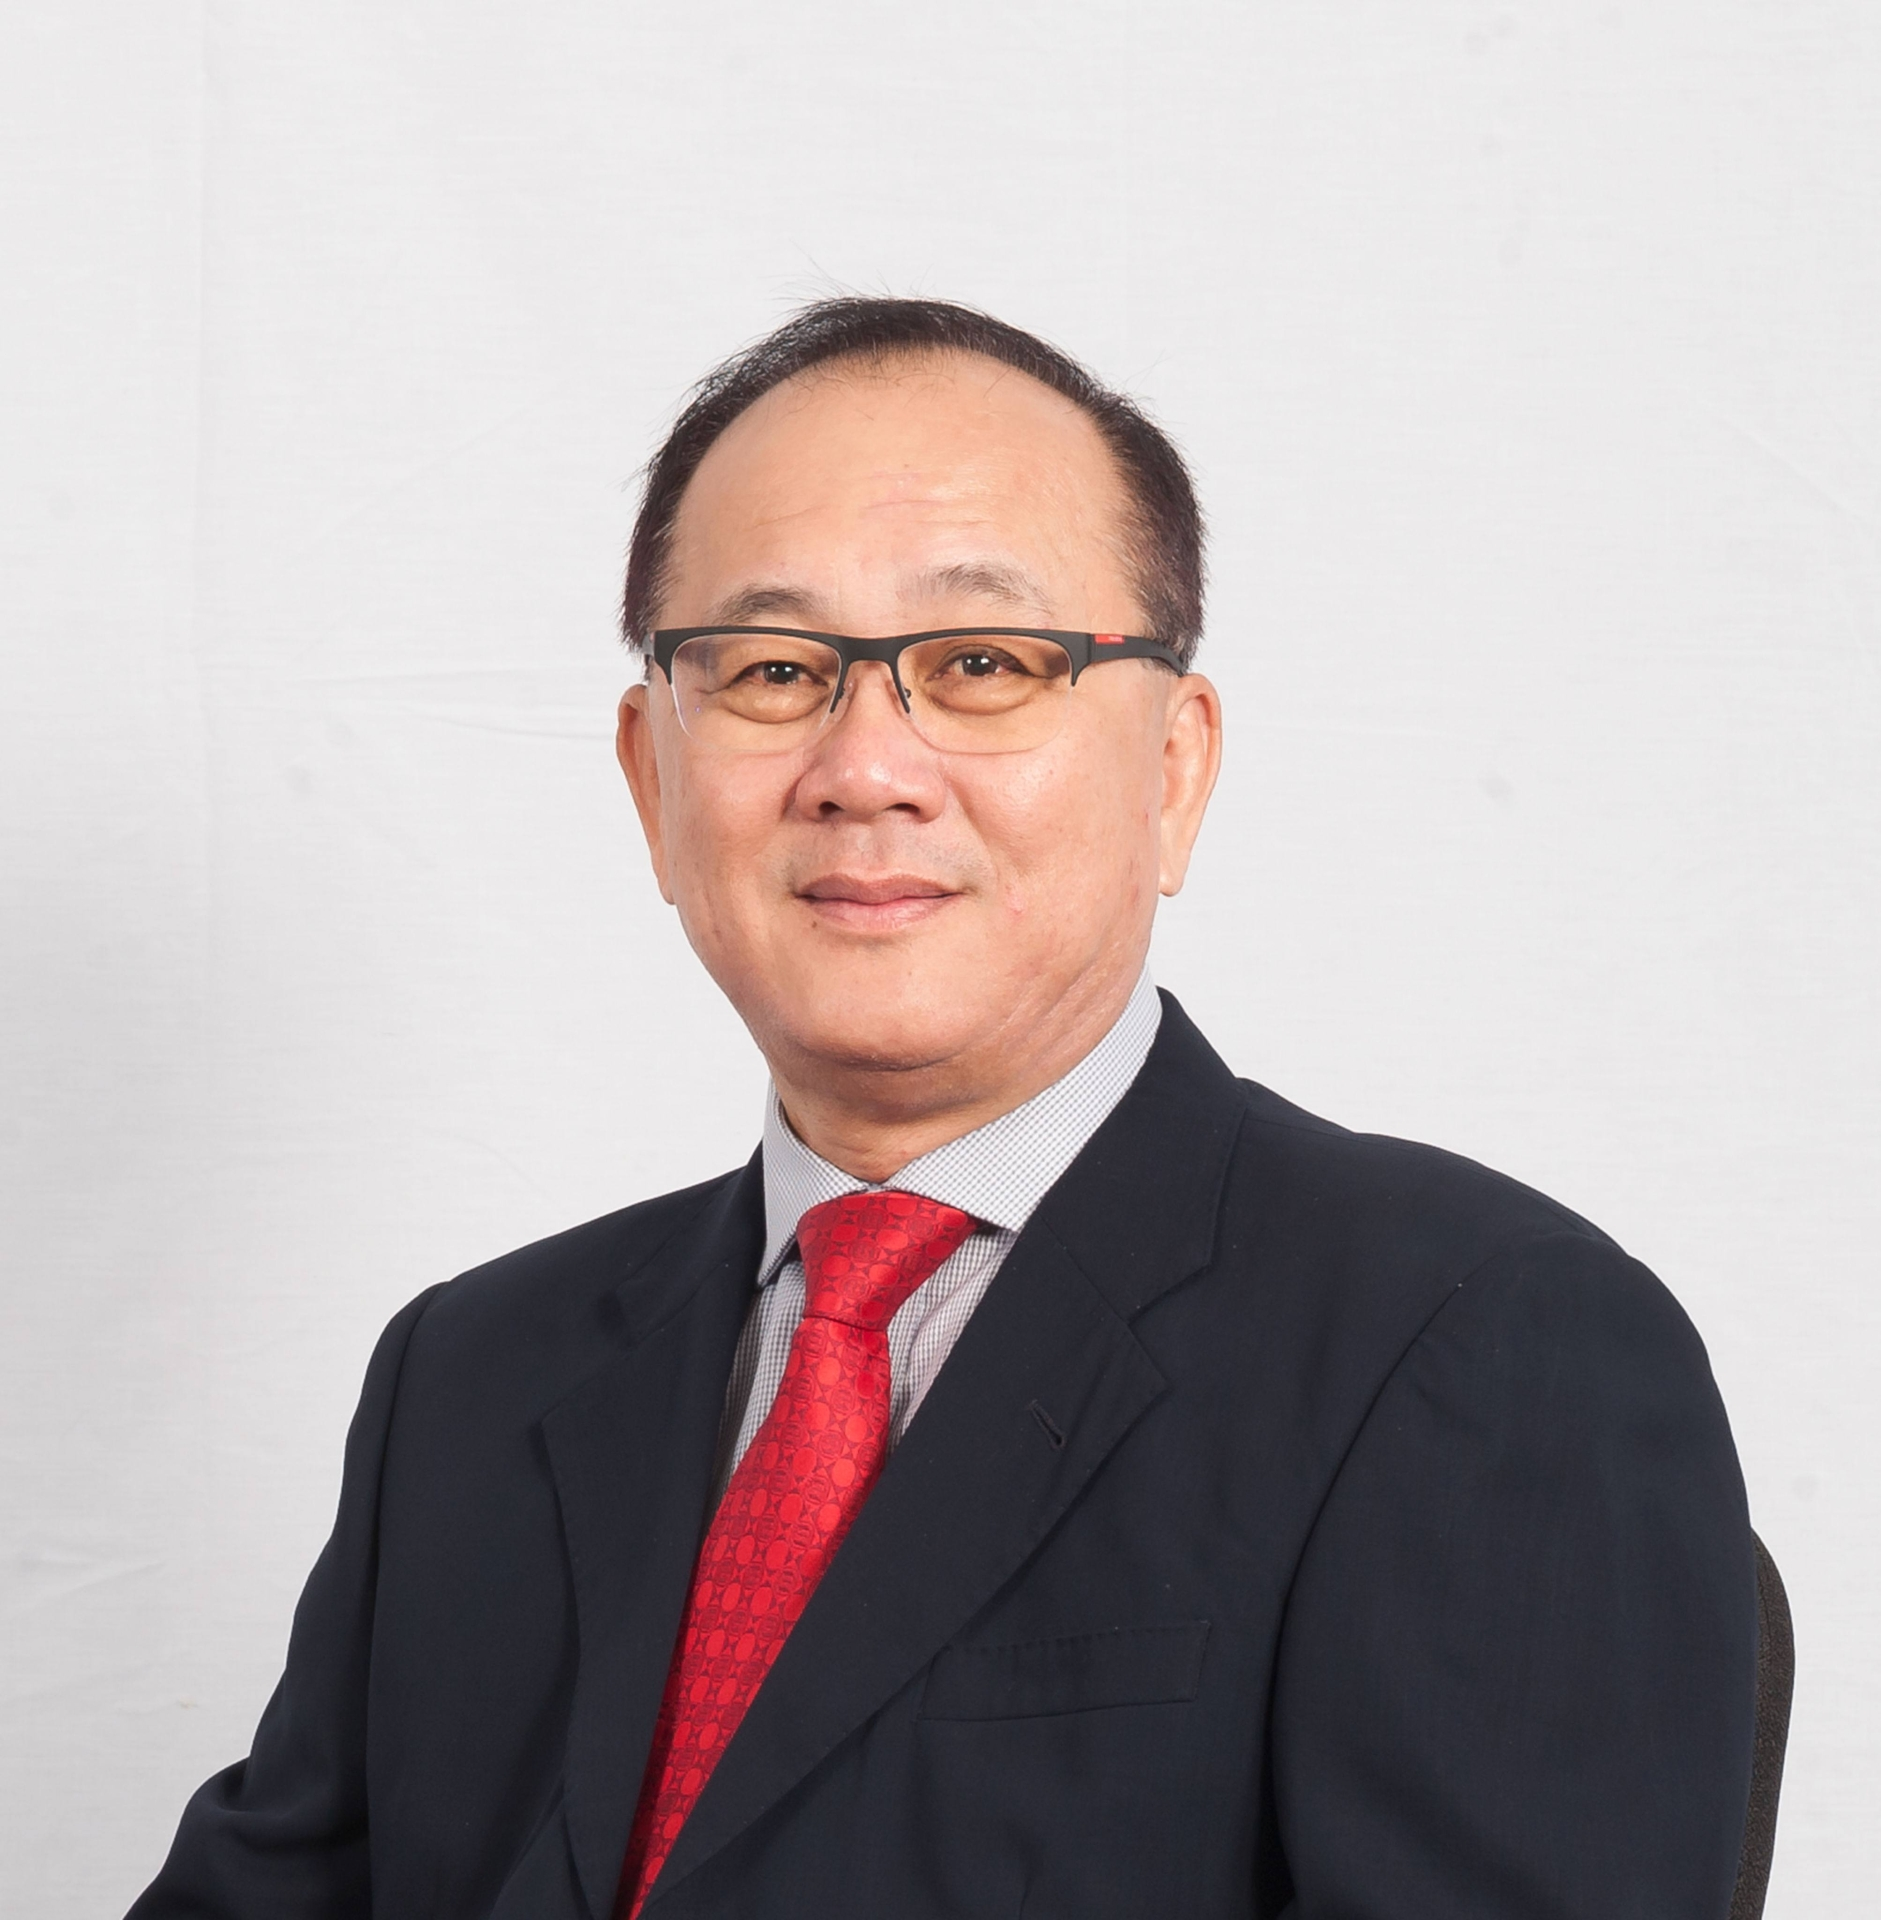 Quek Cham Hong, Chief Operating Officer – Integrated, of Sime Darby Property Berhad